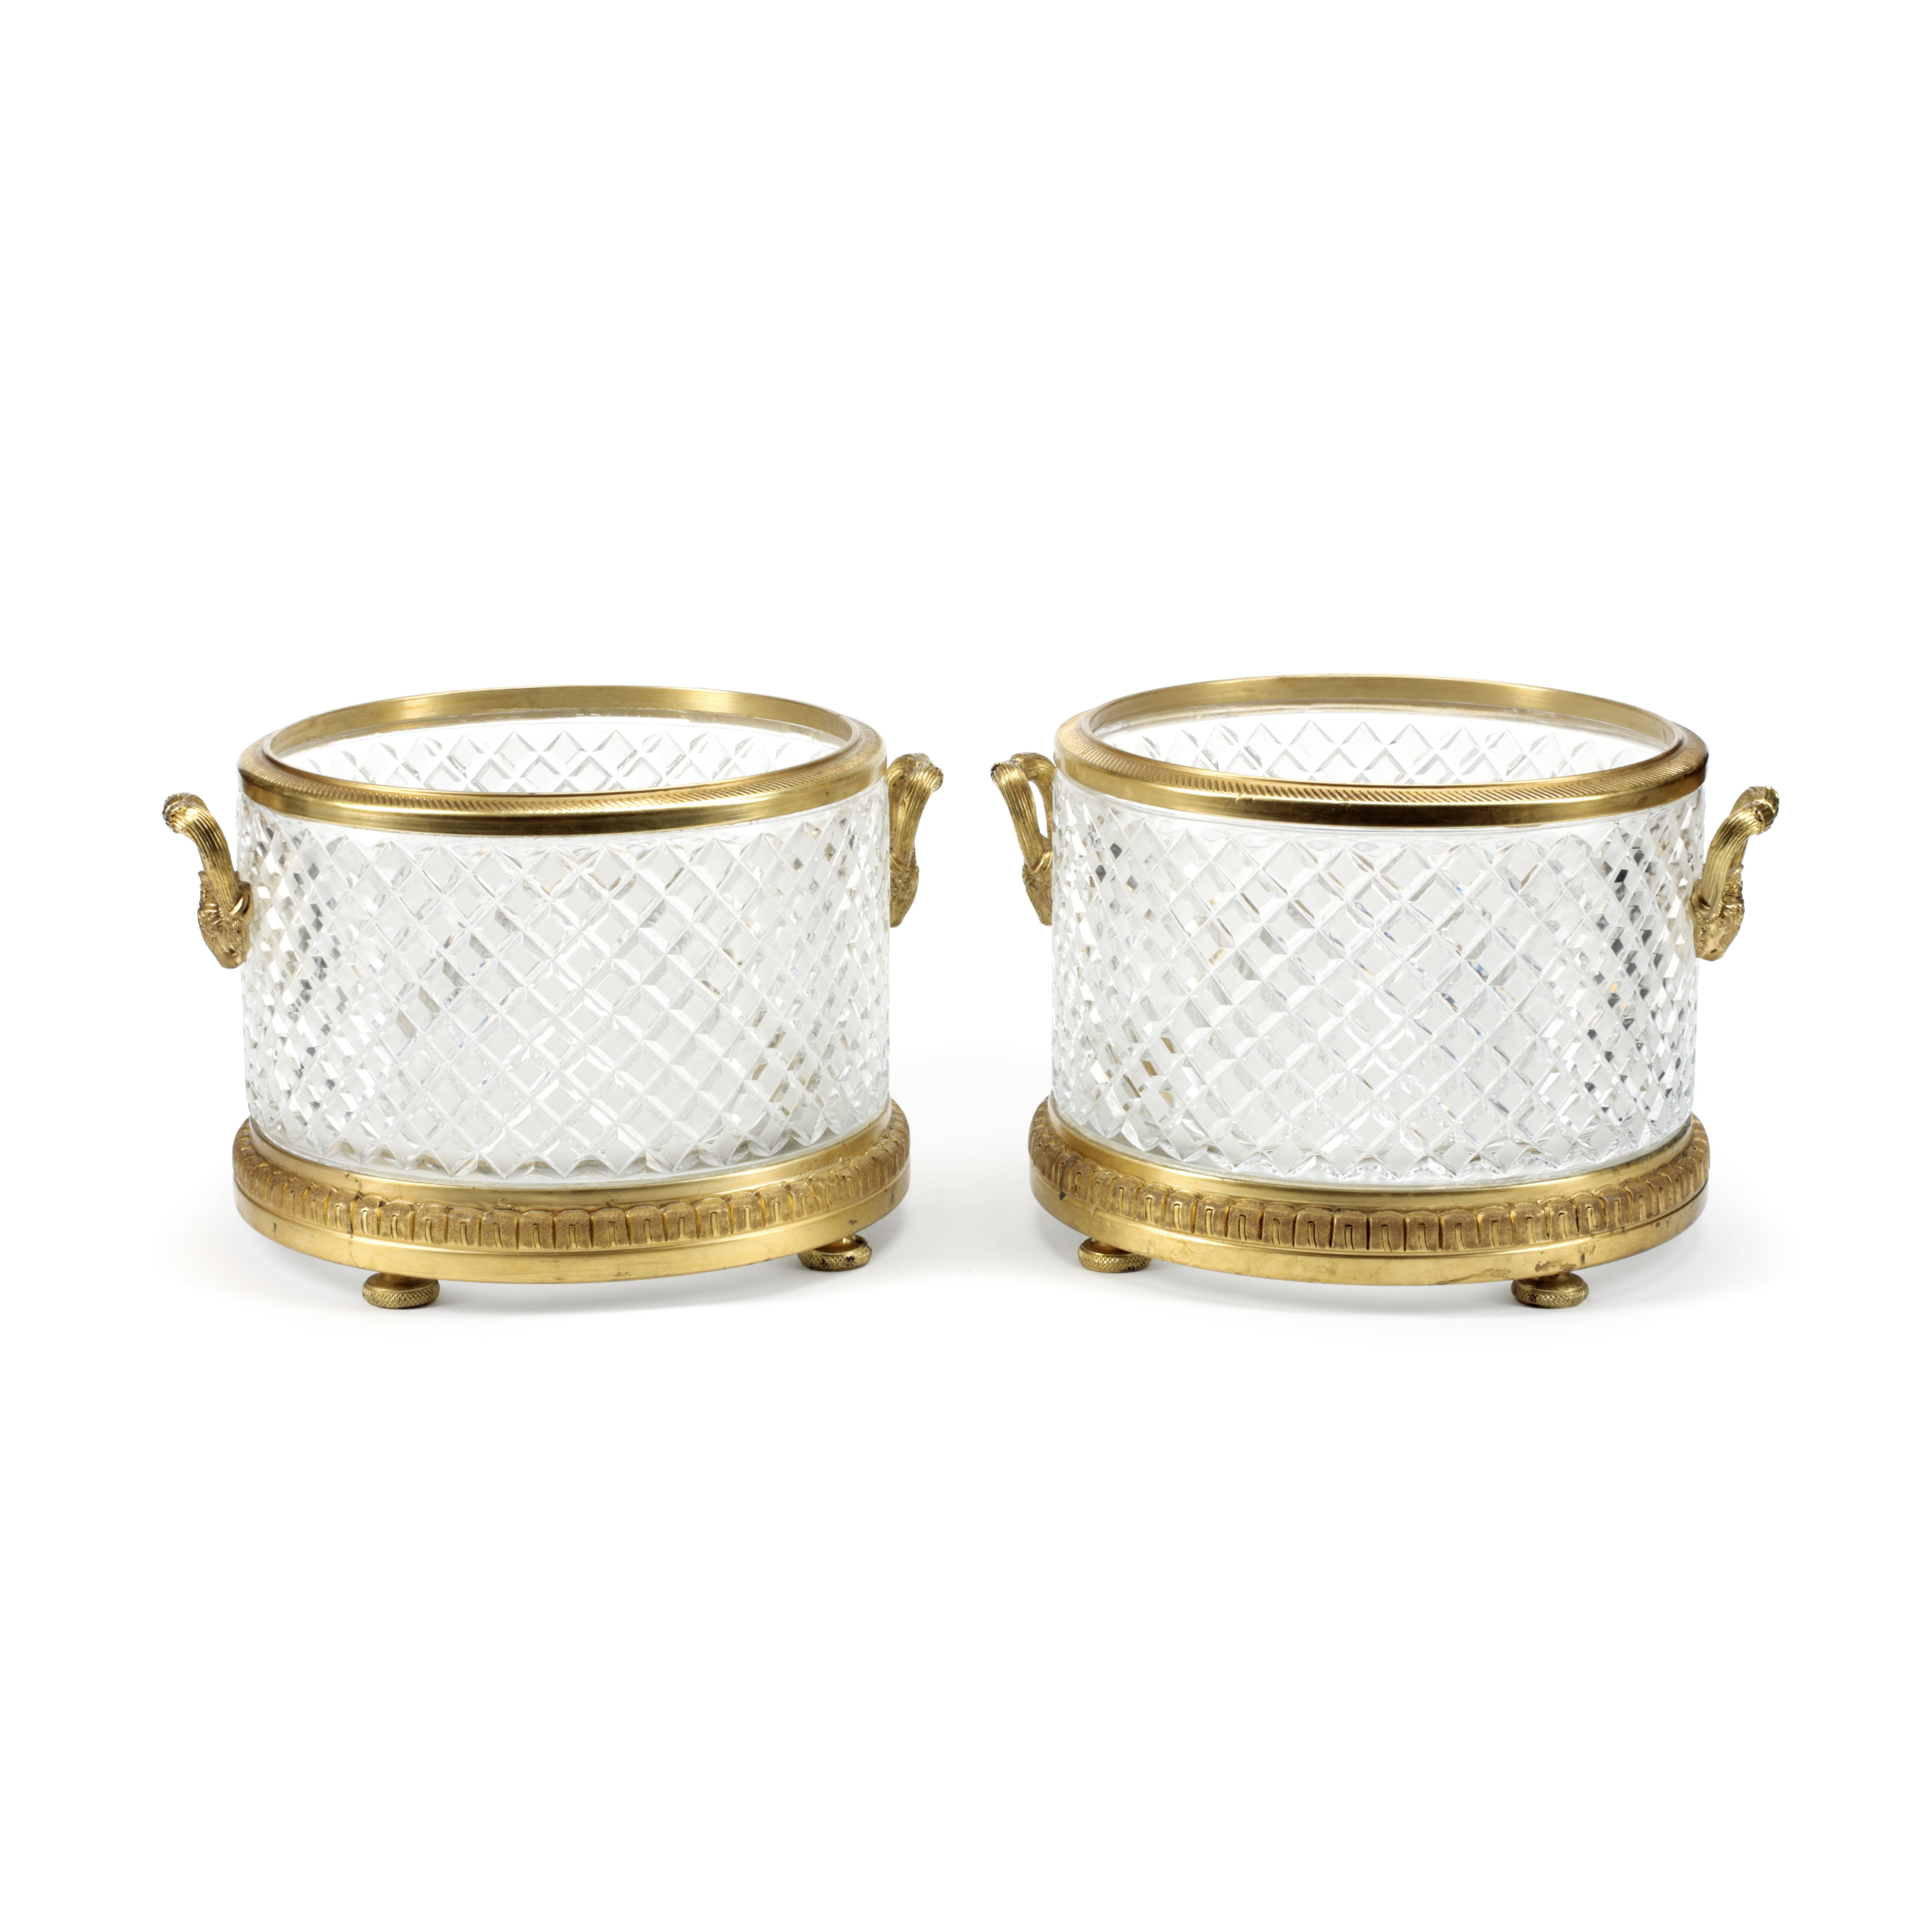 Lot 287 - A Pair of Gilt Bronze Mounted Cut Glass Cache Pots